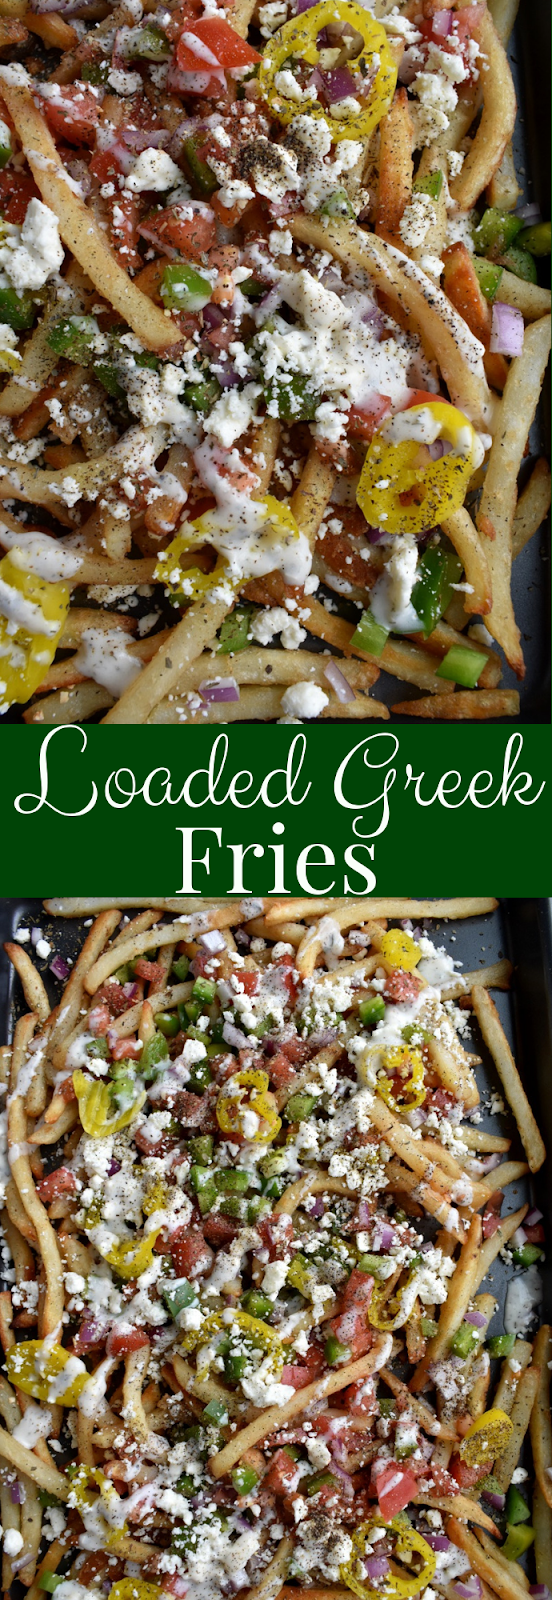 Loaded Greek Fries recipe